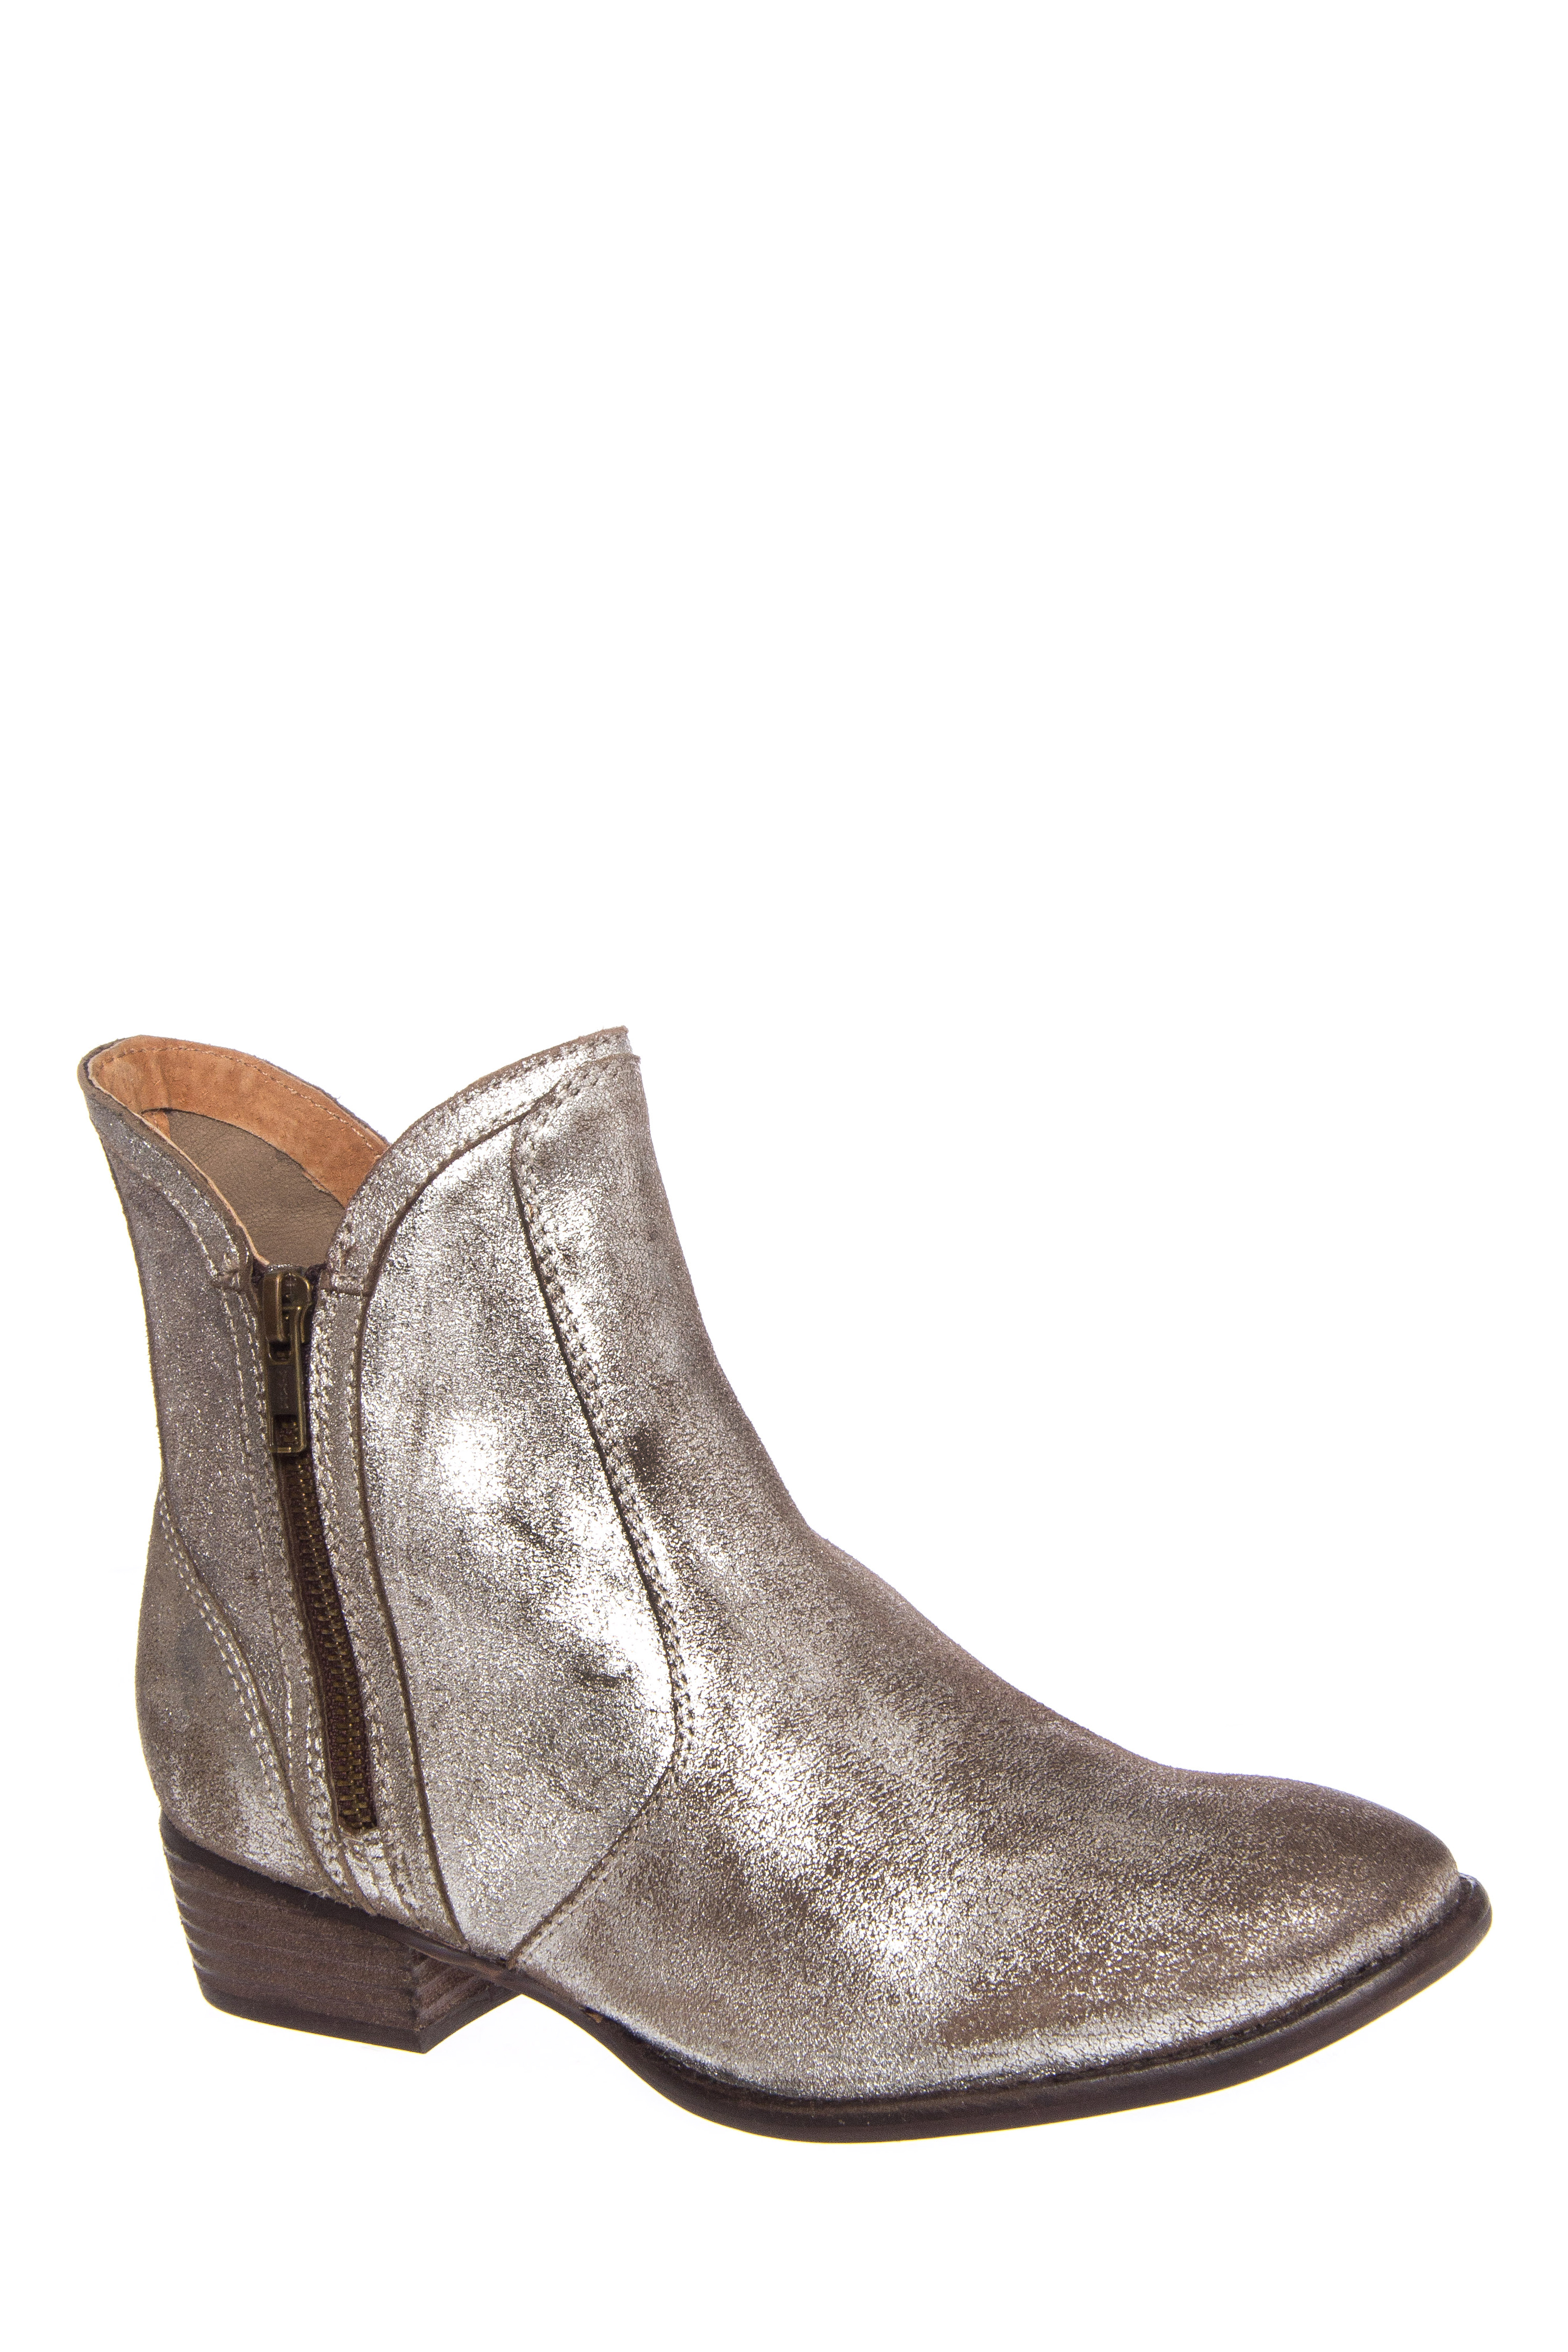 Seychelles Lucky Penny Low Heel Boots - Pewter